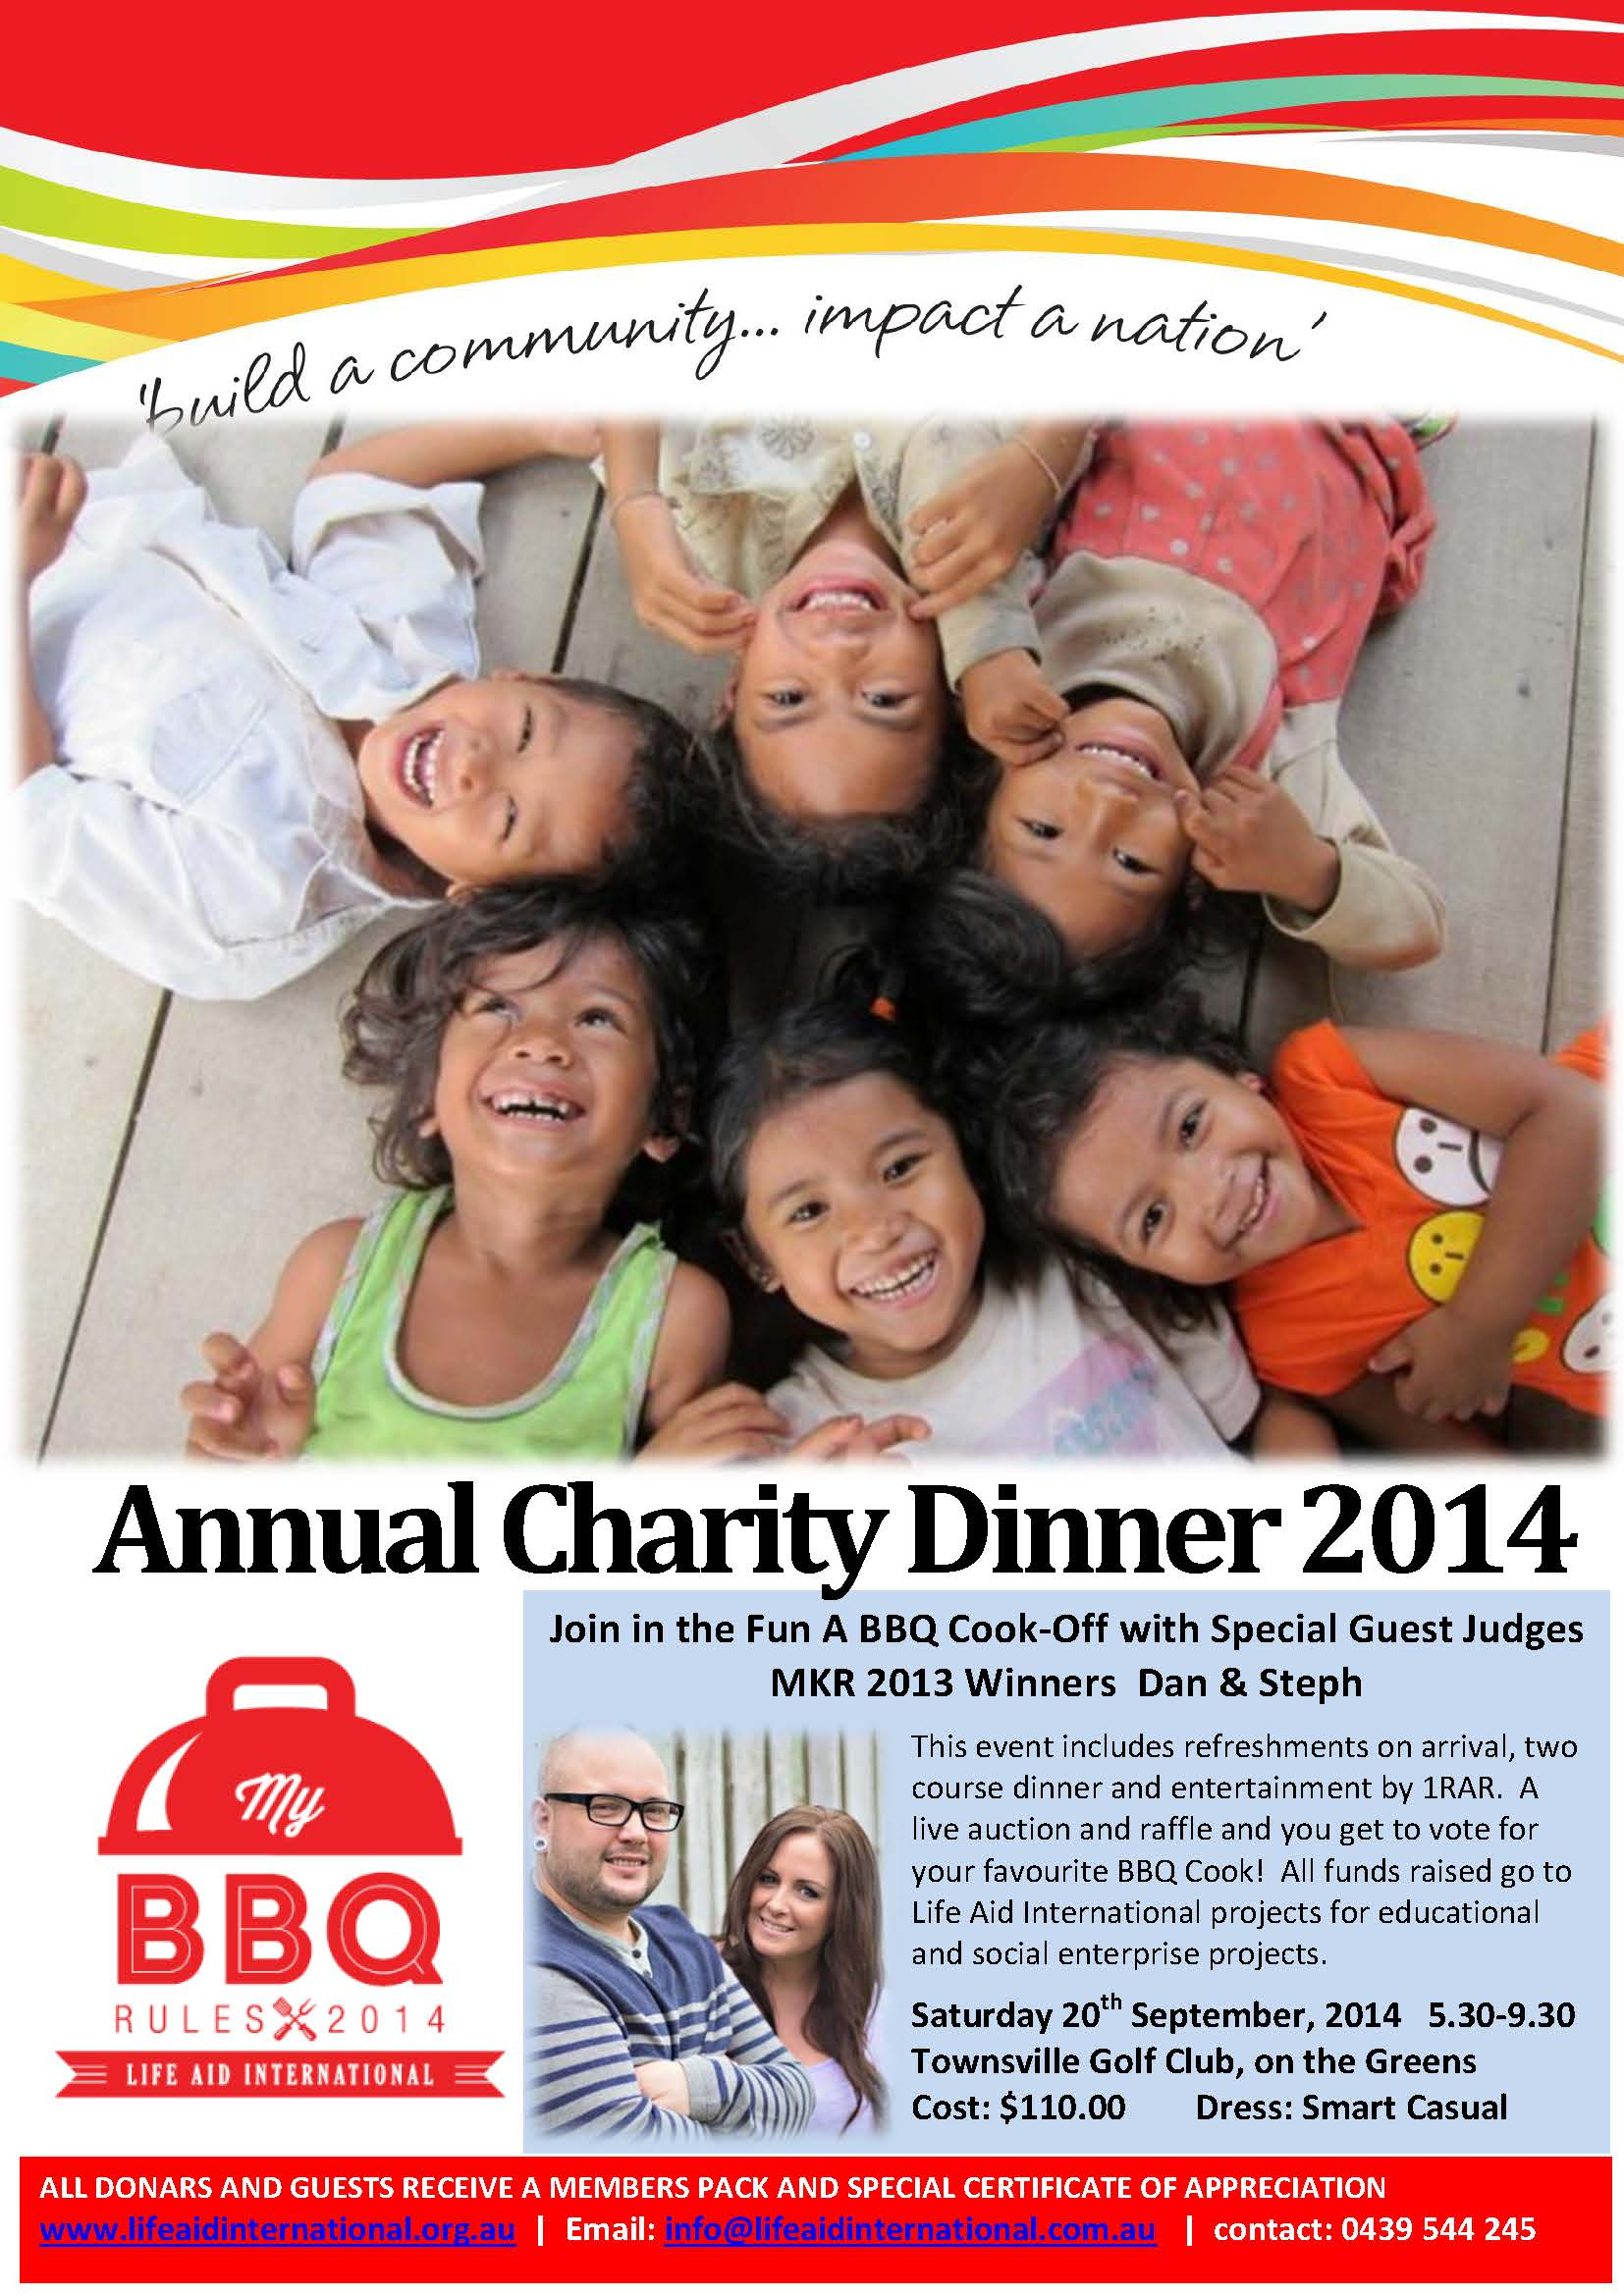 Information on MBR Annual Charity Dinner